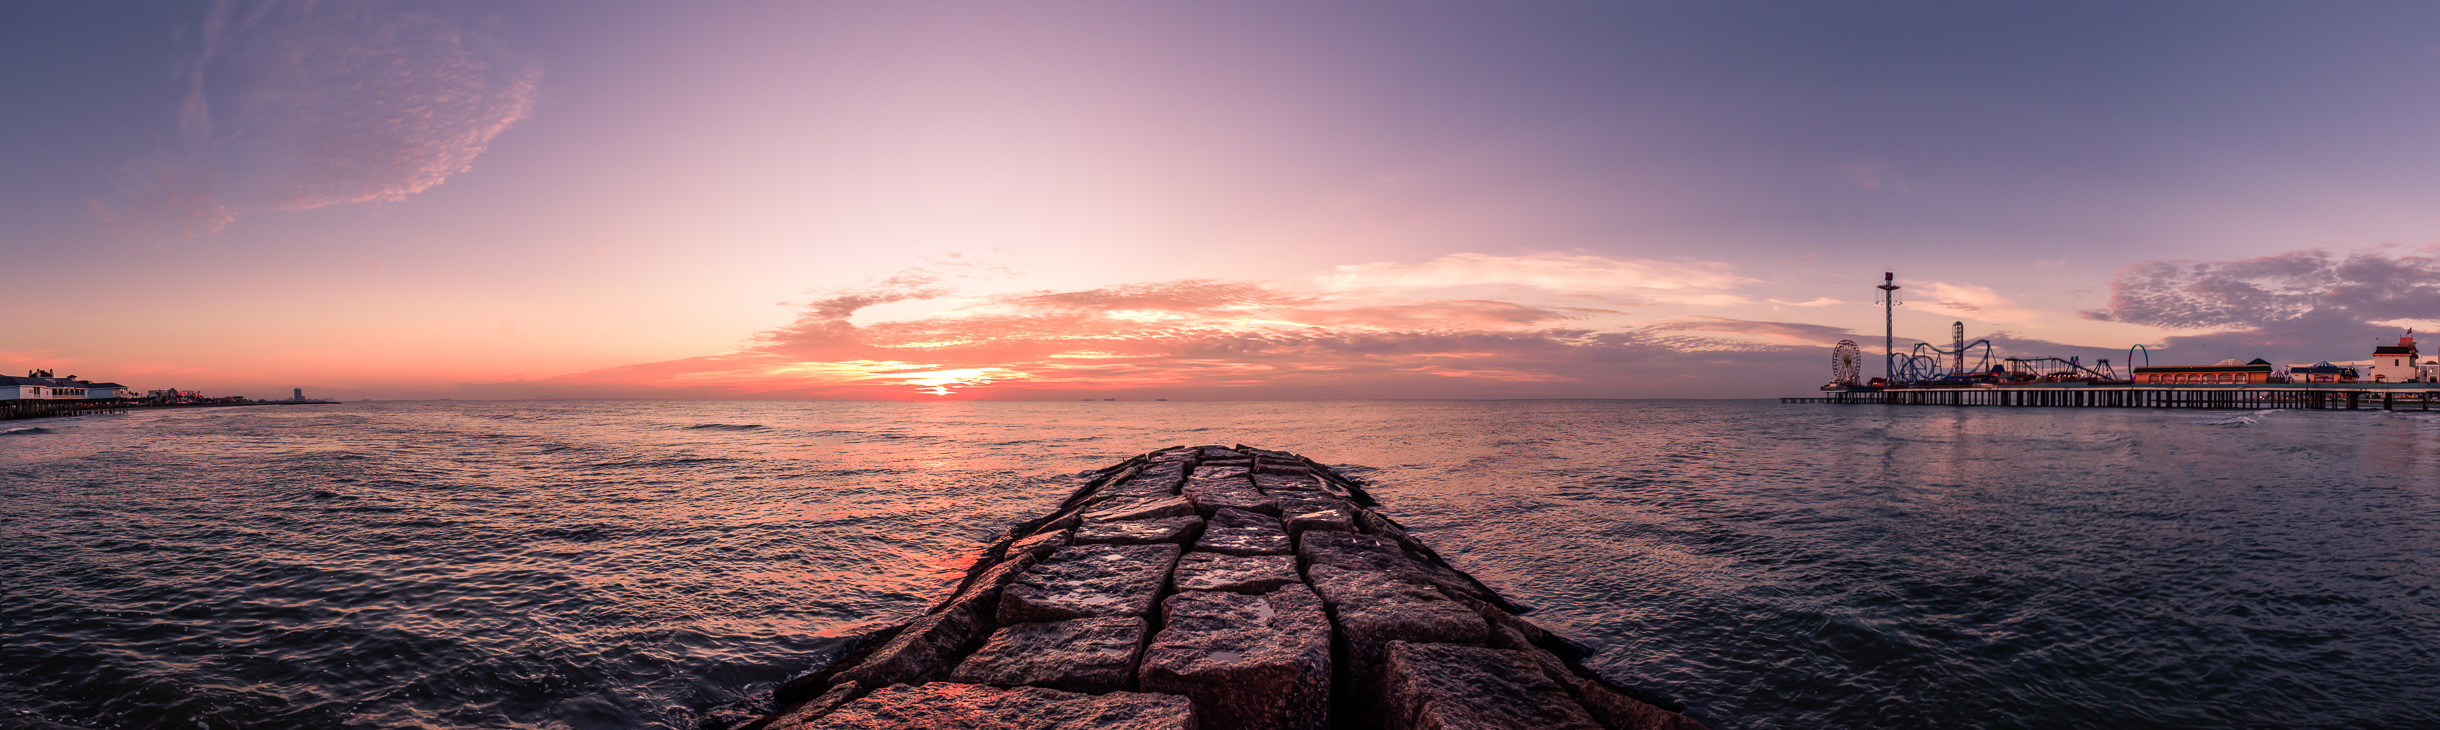 The sun rises over the Gulf of Mexico, as seen from a rock groyne on the Galveston, Texas, beach.